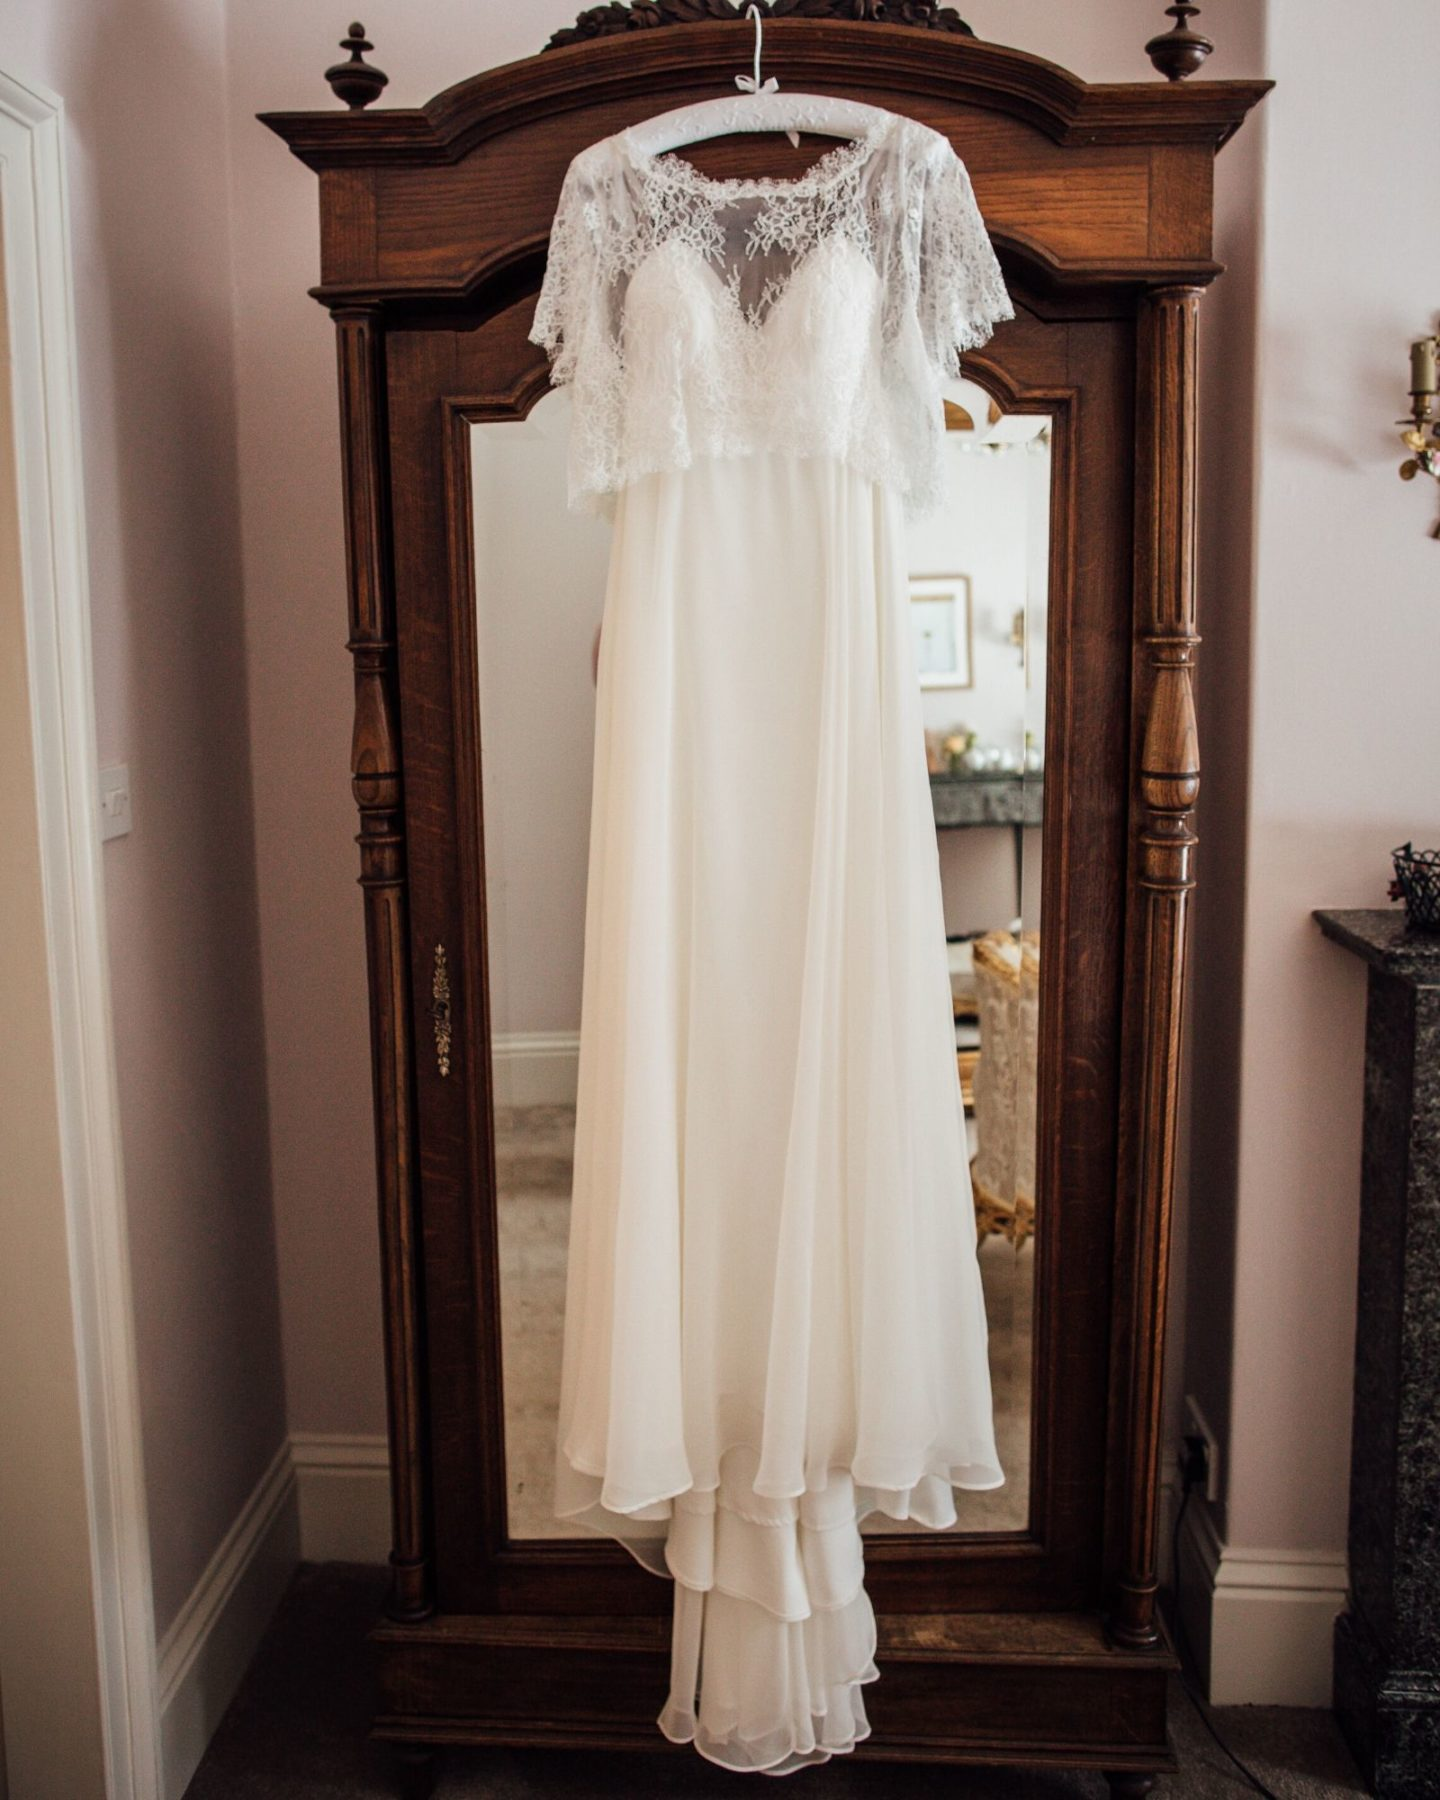 The Freedom Collection lace bespoke wedding dress